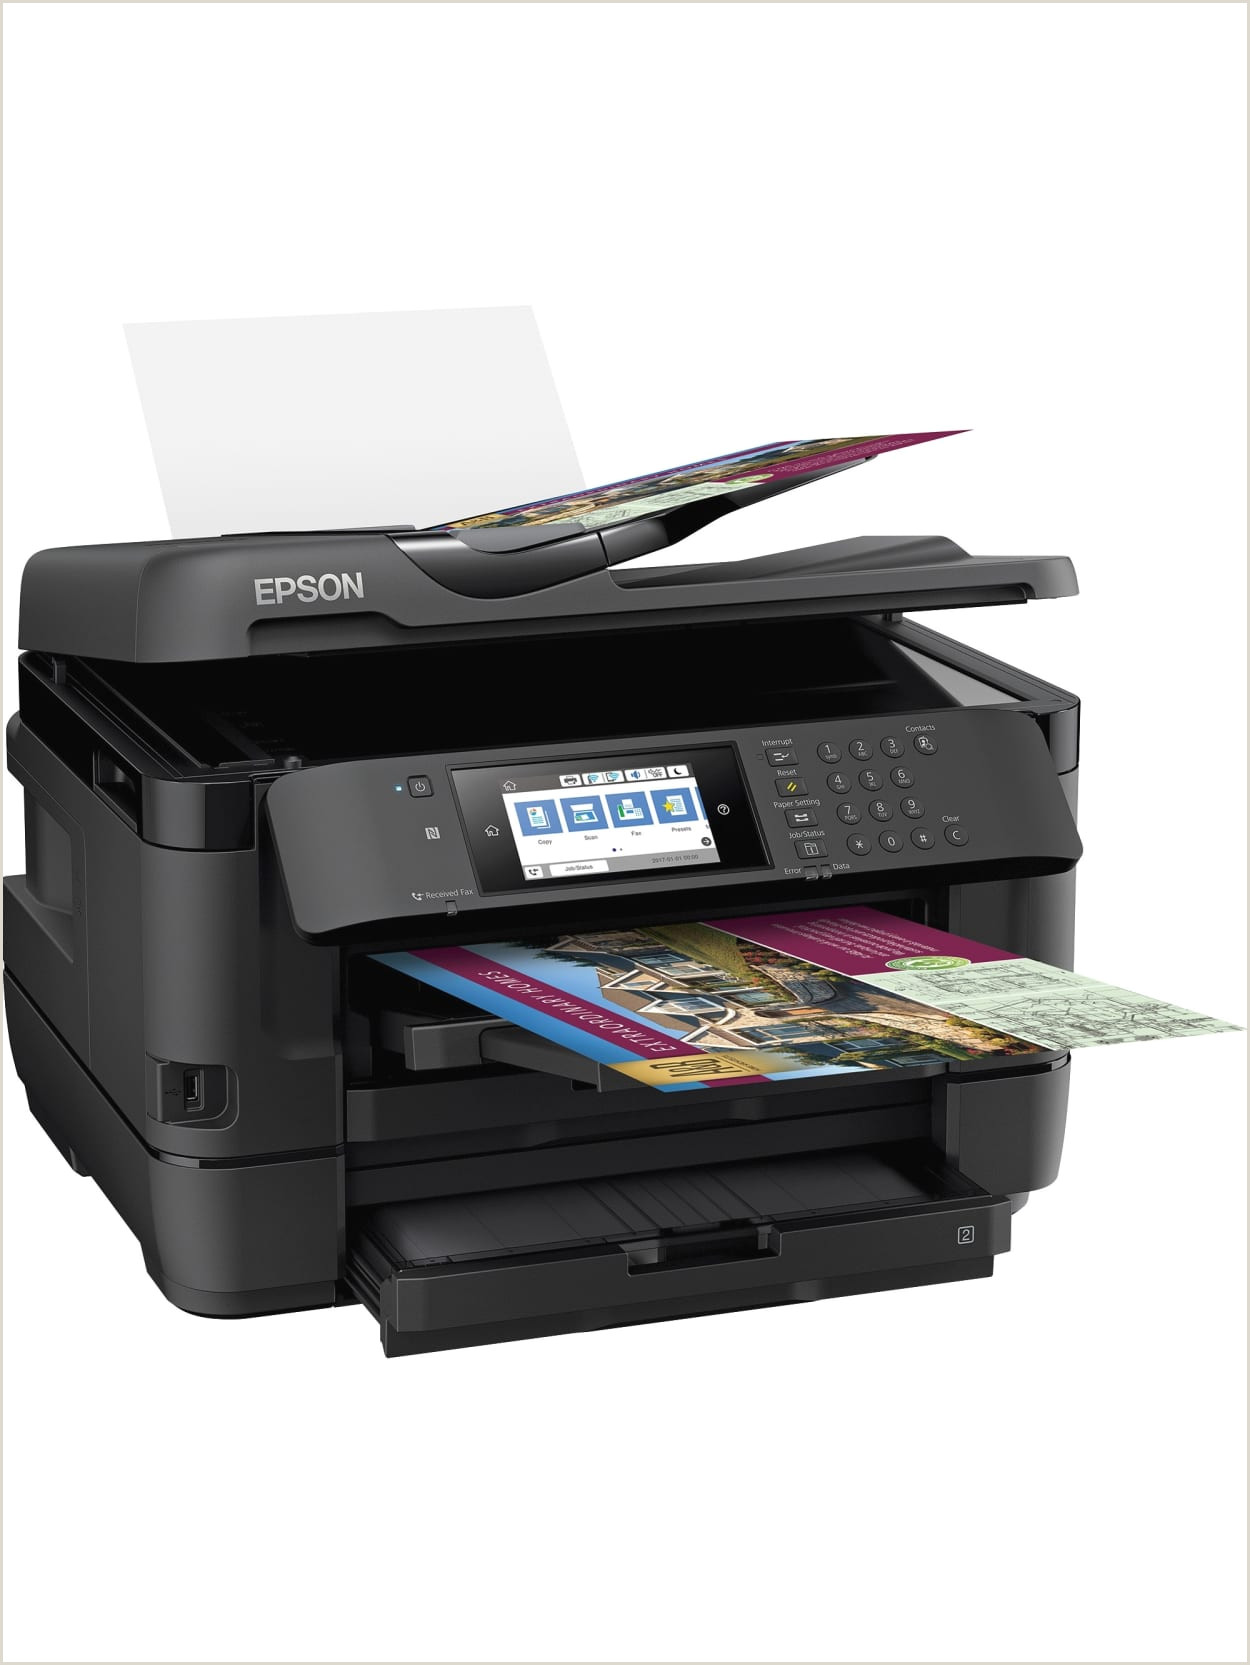 Print Business Cards Today Epson Workforce Wf 7720 19 Wide Format Wireless Inkjet All